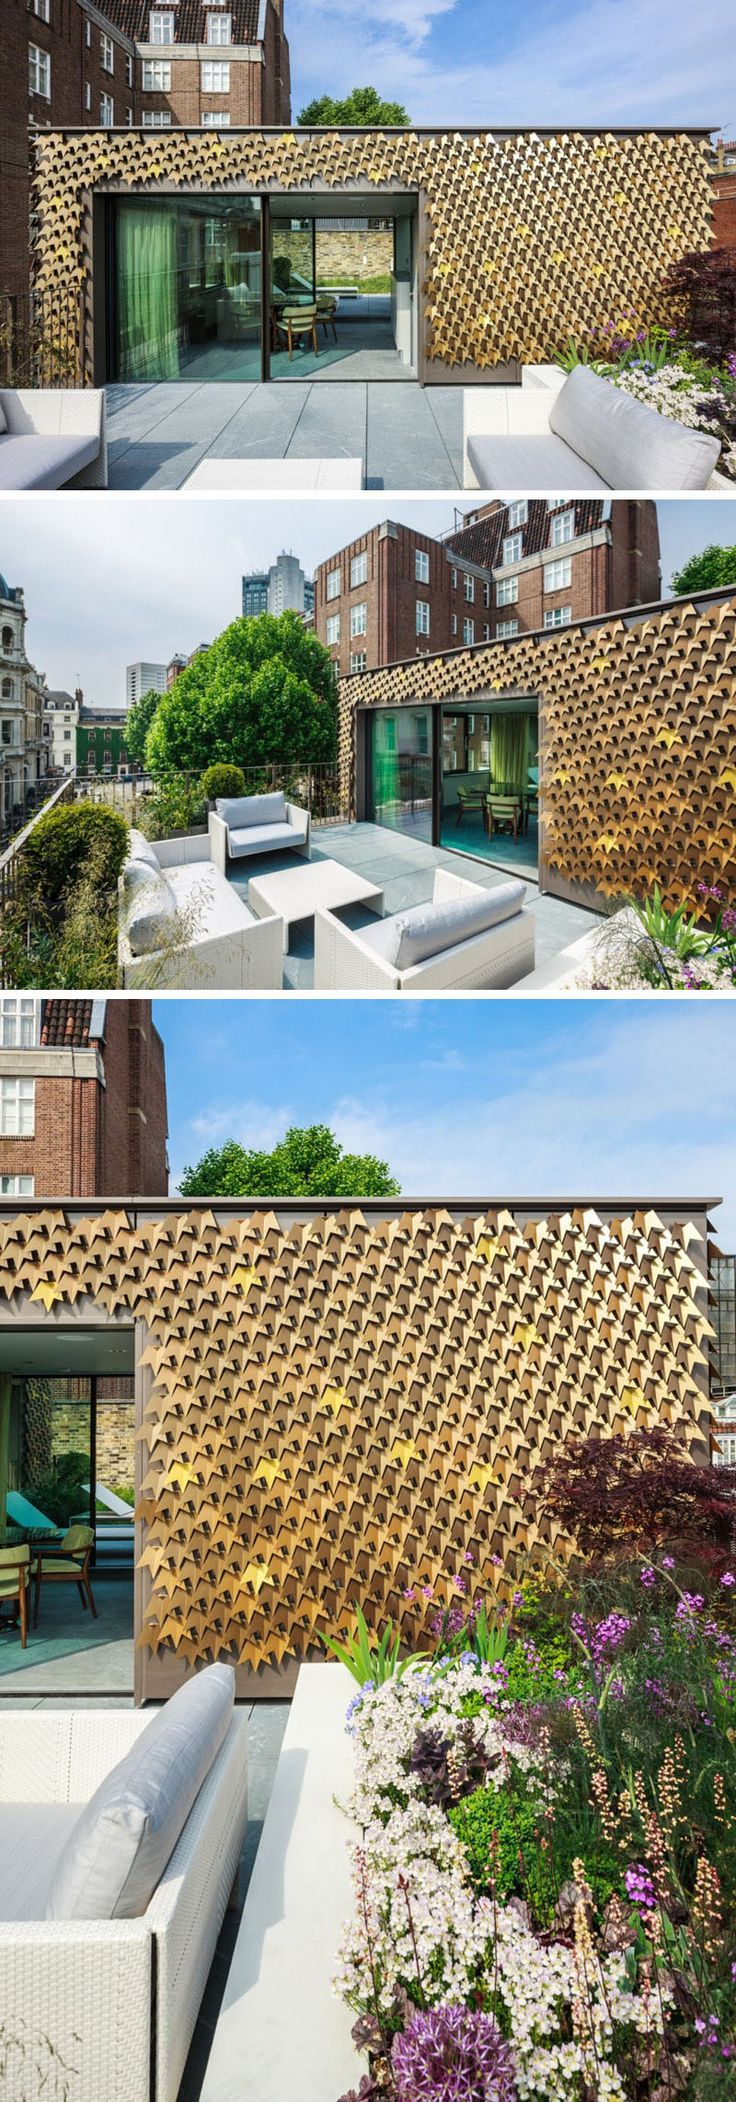 A Creative House Siding Idea - Leaf Inspired Metal Shingles // 4080 folded aluminum leaves cover the facade of this home in London.